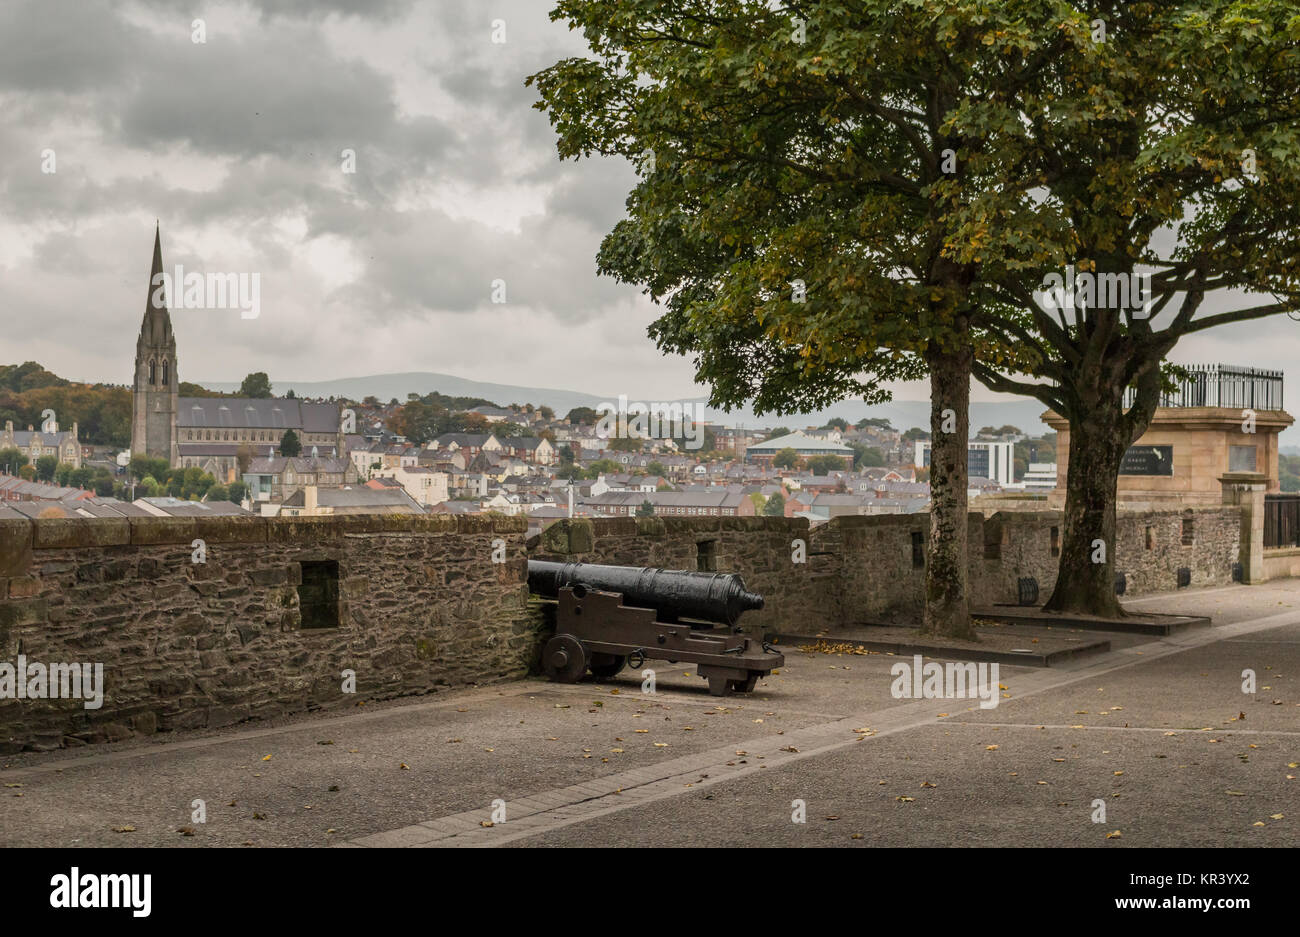 The city walls of Derry in Northern Ireland were completed in 1619. - Stock Image